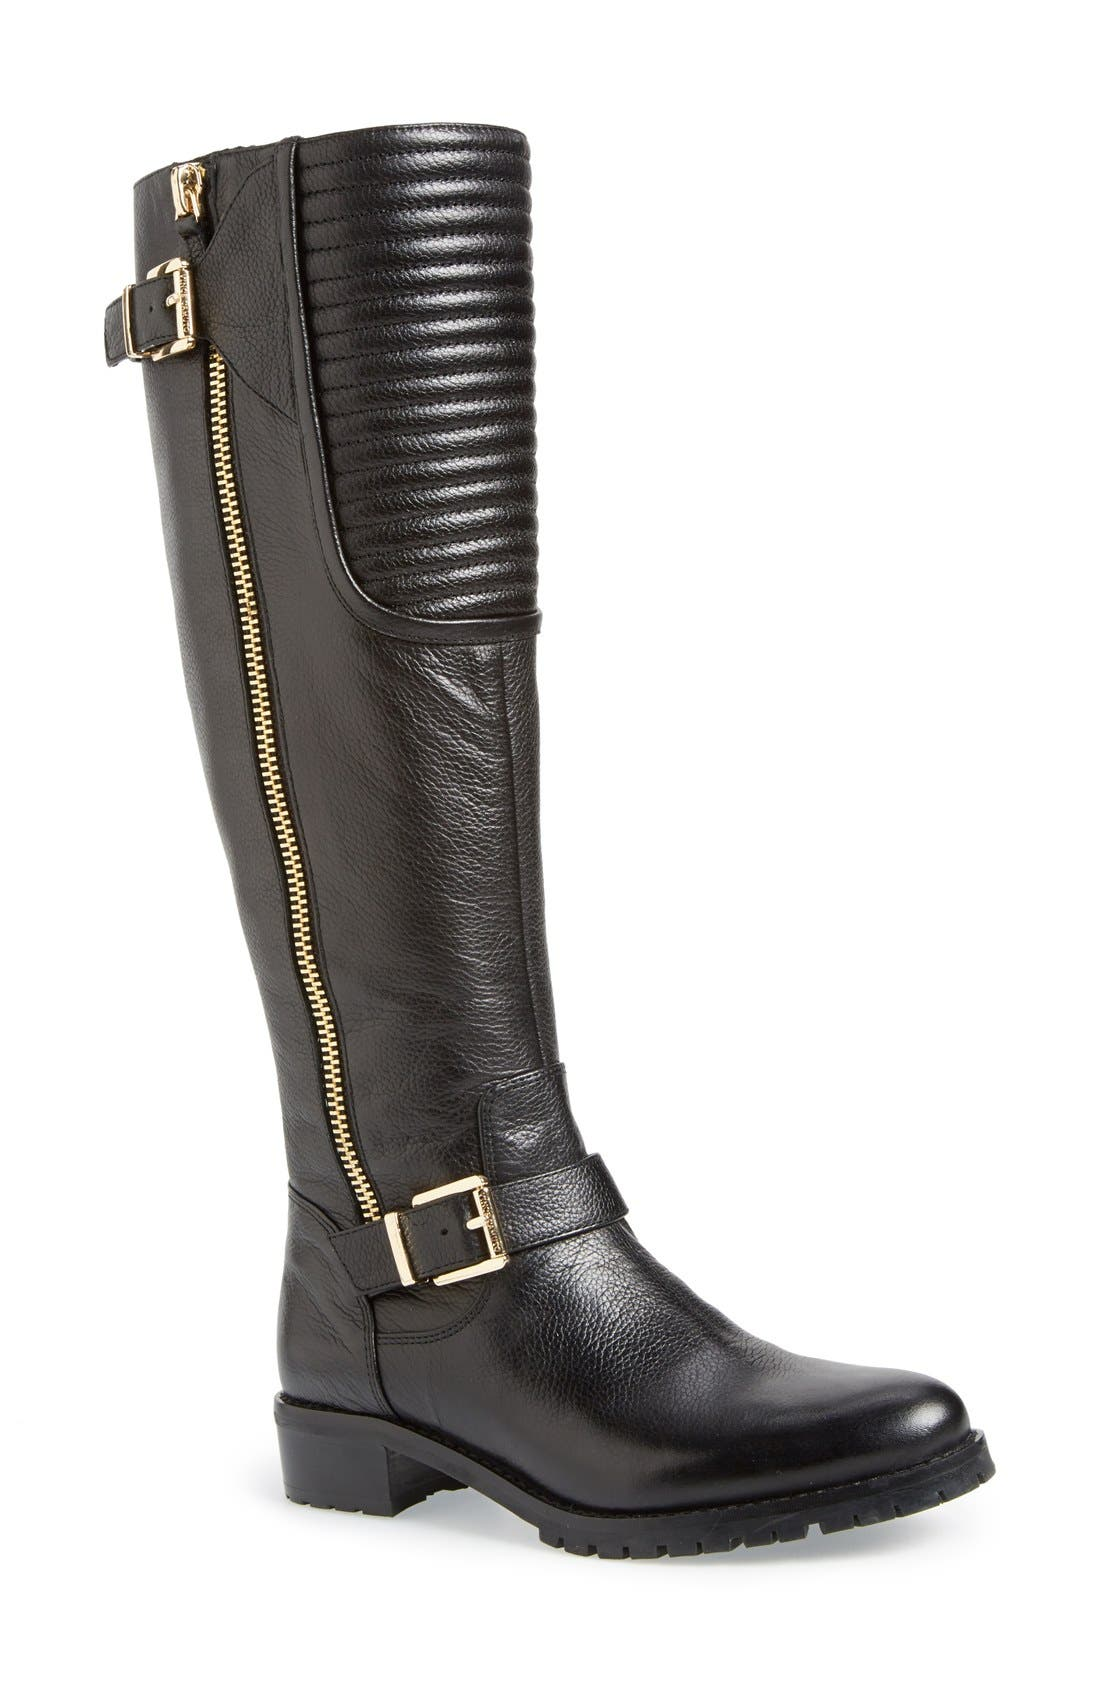 Alternate Image 1 Selected - Vince Camuto 'Jamina' Riding Boot (Women)